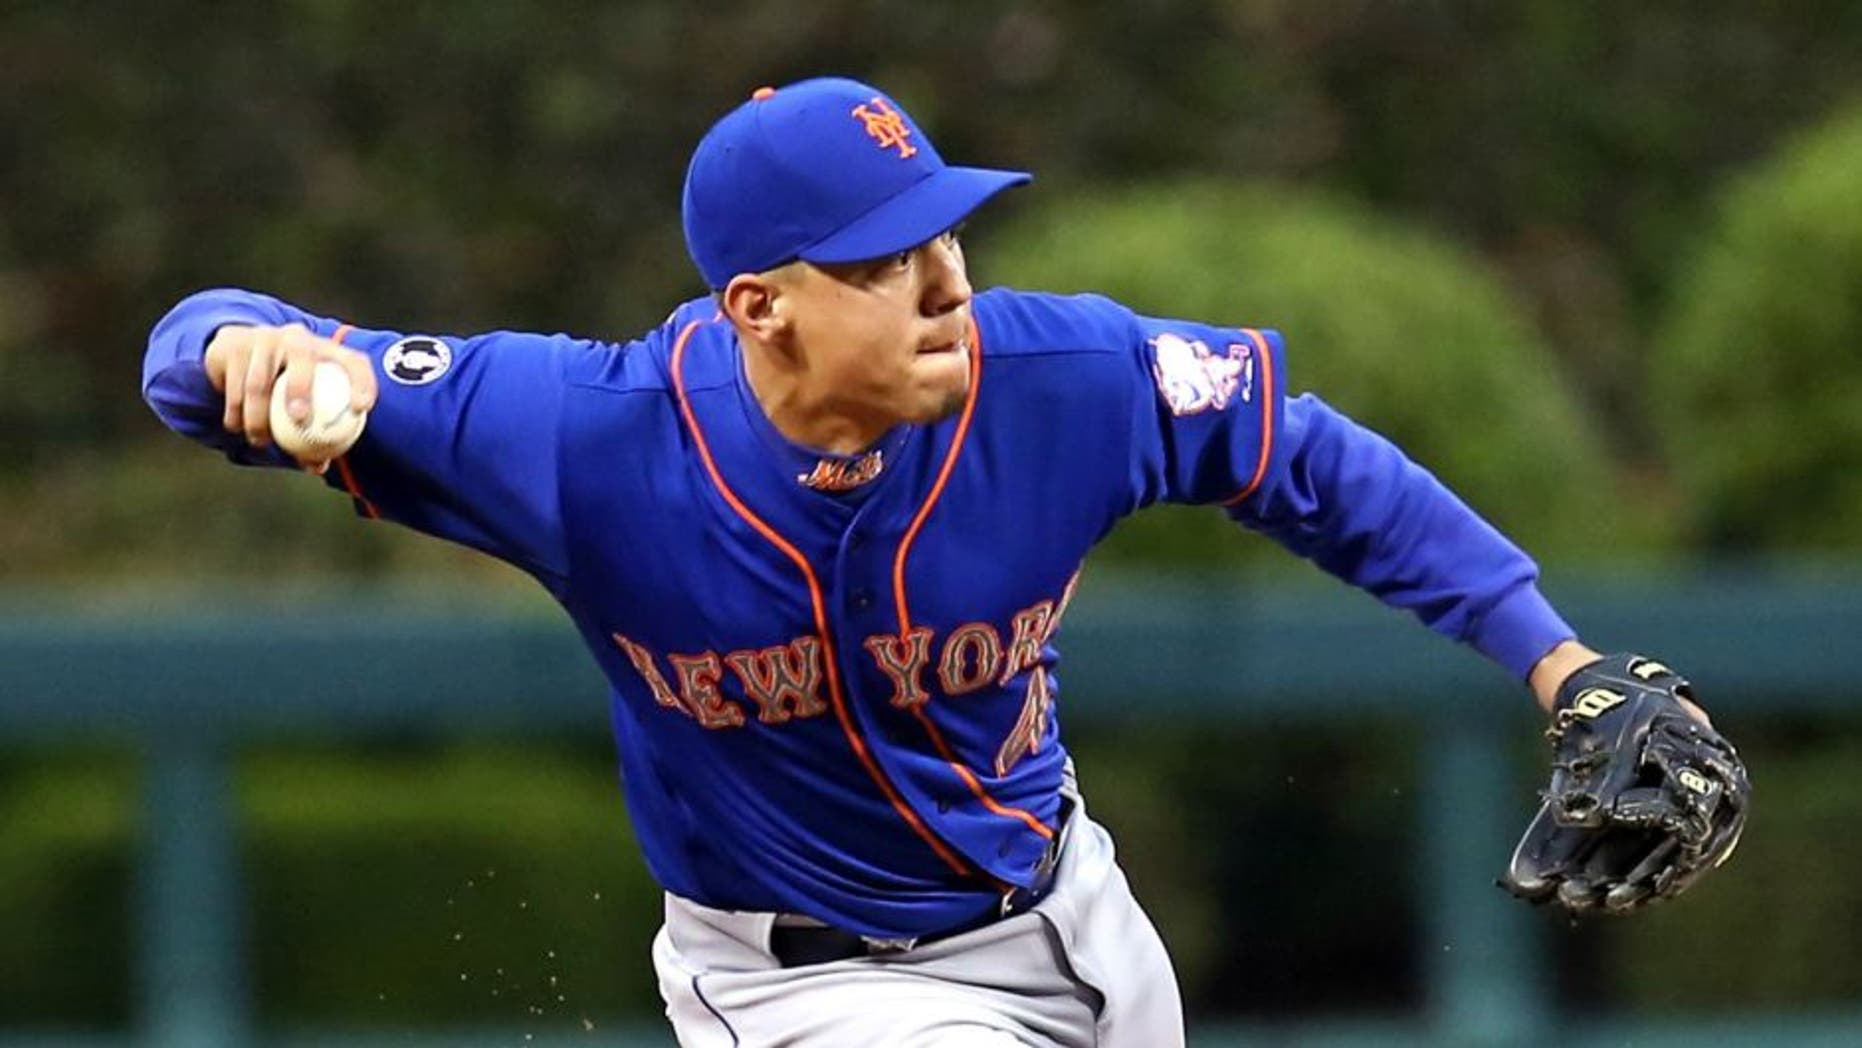 May 29, 2014; Philadelphia, PA, USA; New York Mets shortstop Wilmer Flores (4) attempts to throw out a runner in the second inning of a game against the Philadelphia Phillies at Citizens Bank Park. Mandatory Credit: Bill Streicher-USA TODAY Sports